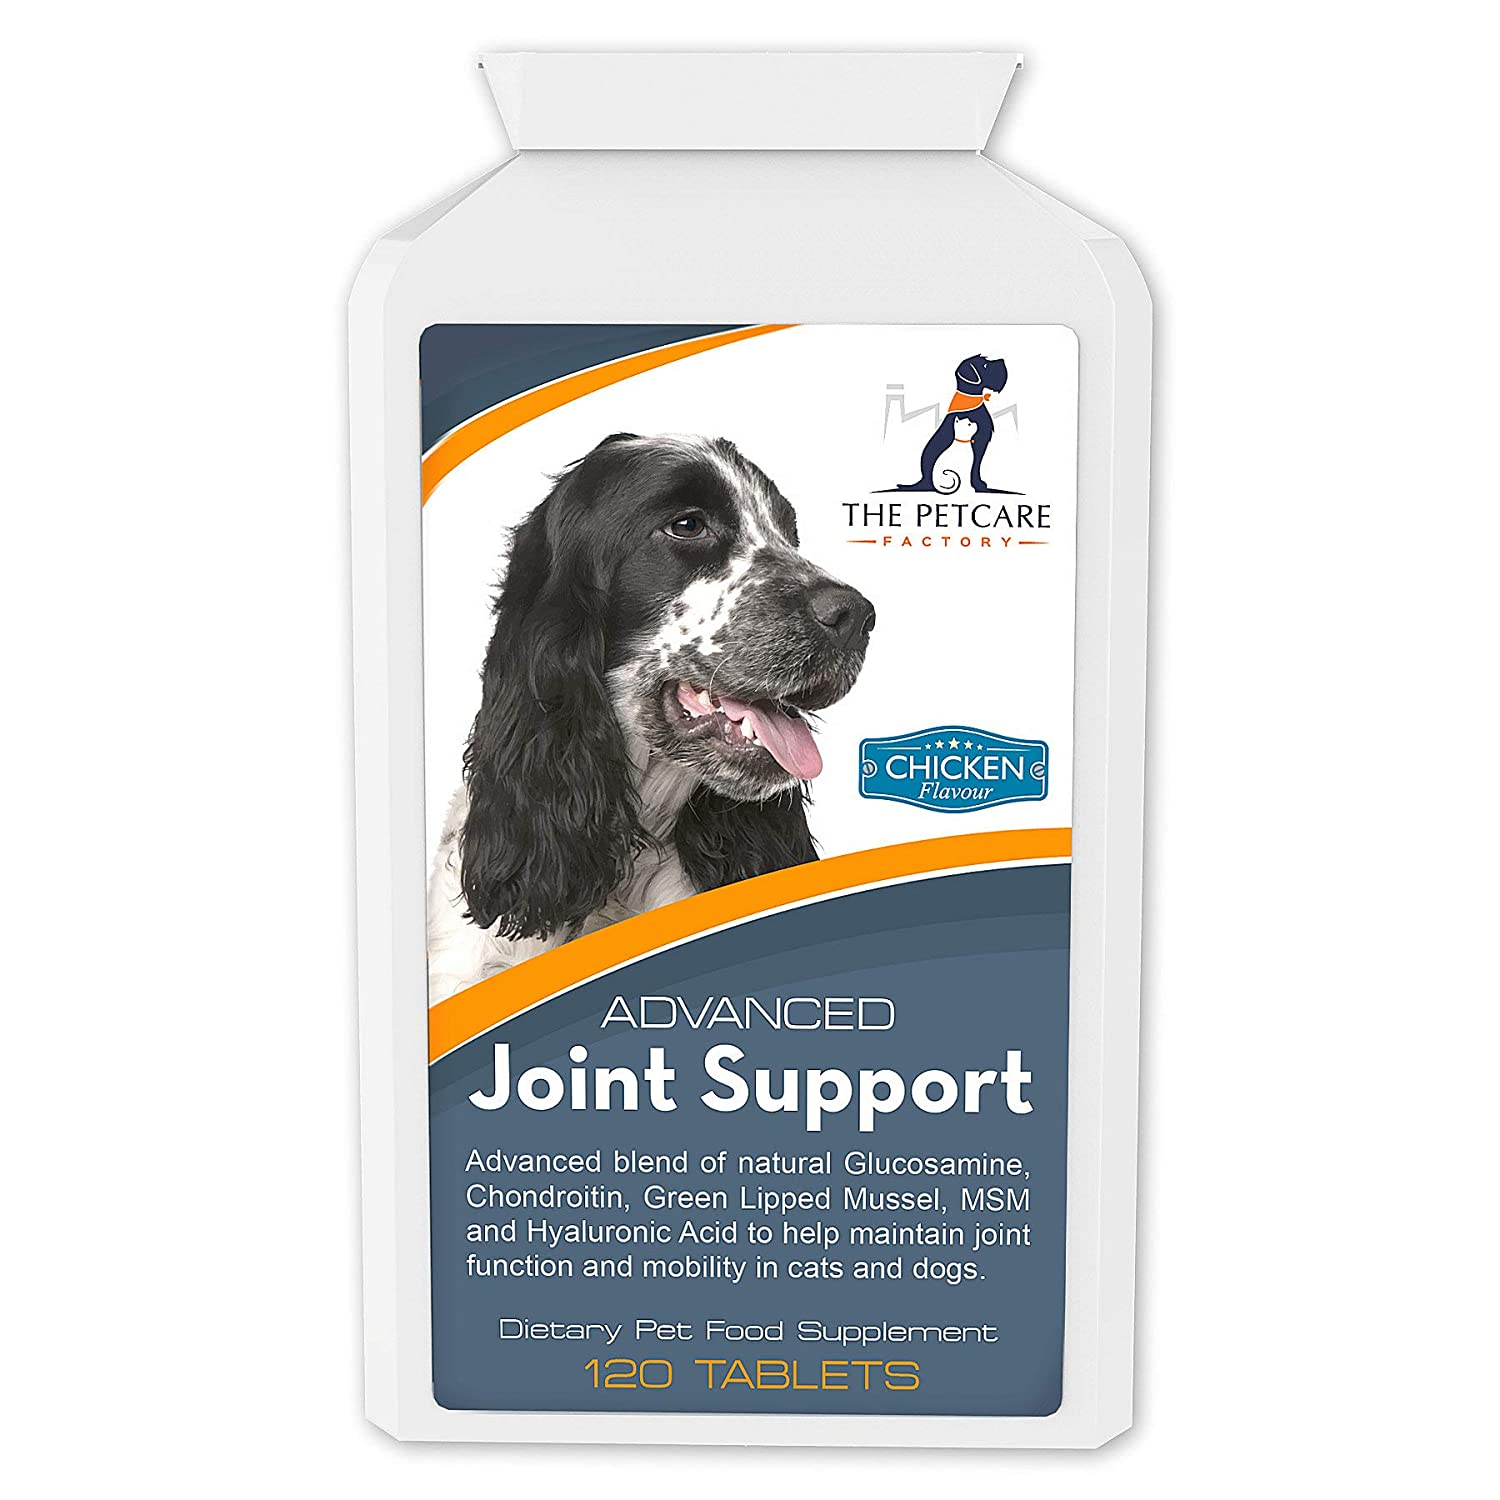 Advanced Joint Support Supplement For Dogs, With Powerful Glucosamine, Chondroitin, Green Lipped Mussel, MSM, Curcumin & Hyaluronic Acid, Human Grade Ingredients, 120 Tablets, UK Manufactured